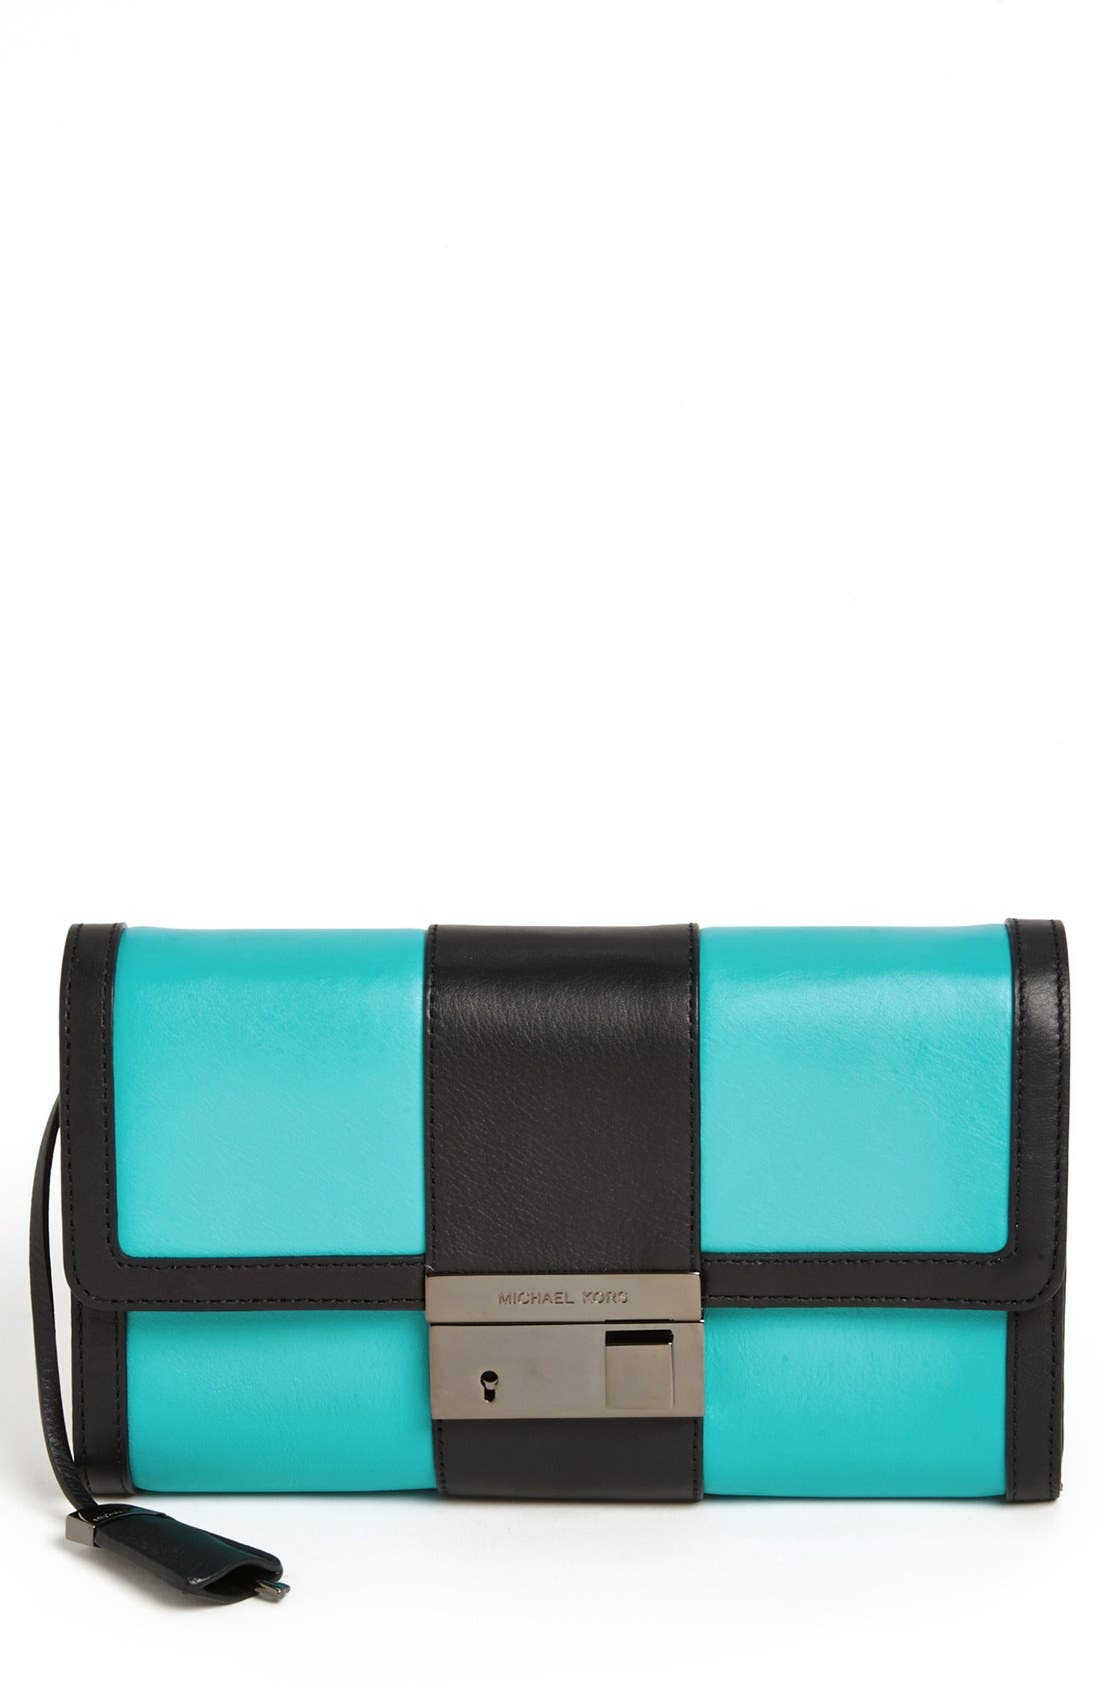 Main Image - Michael Kors 'Gia' Colorblock Leather Clutch